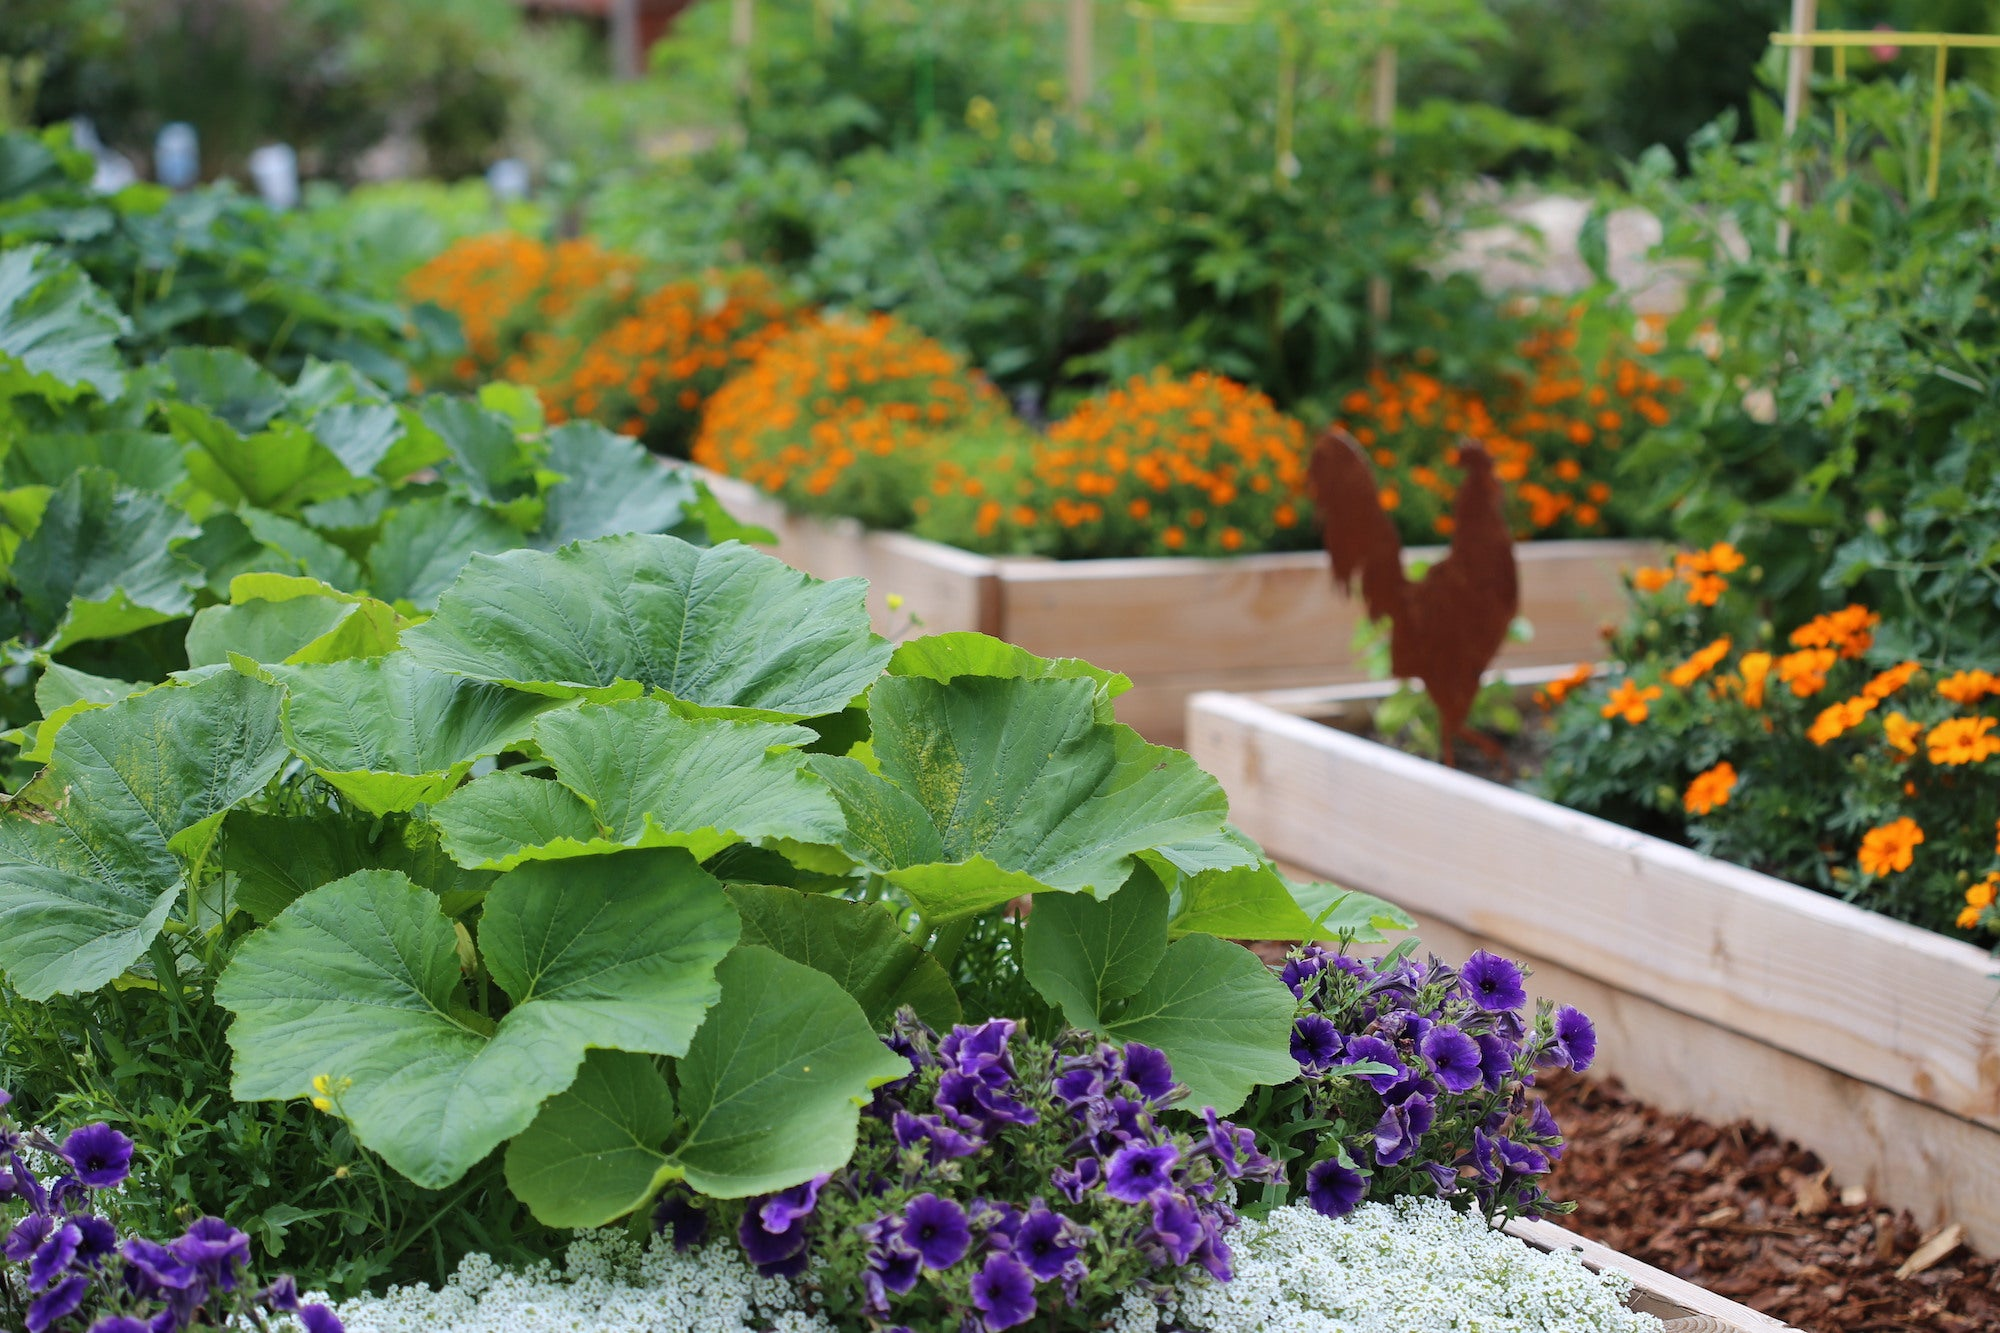 Plant Vegetables, Flowers or Both?